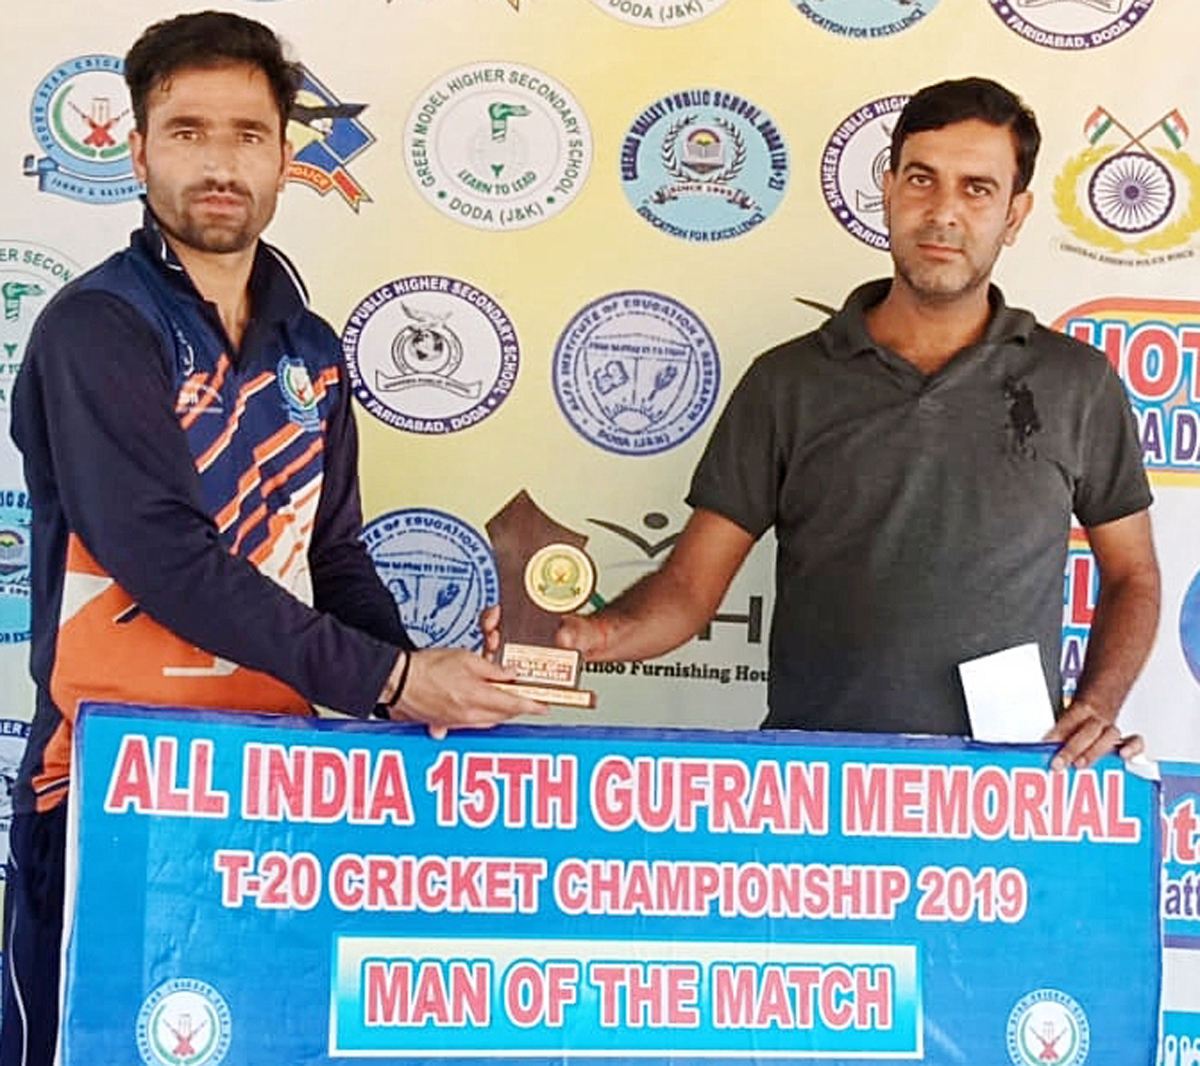 Ecc Trounces Acc By 5 Wickets In Gufran T20 Cricket C Ship